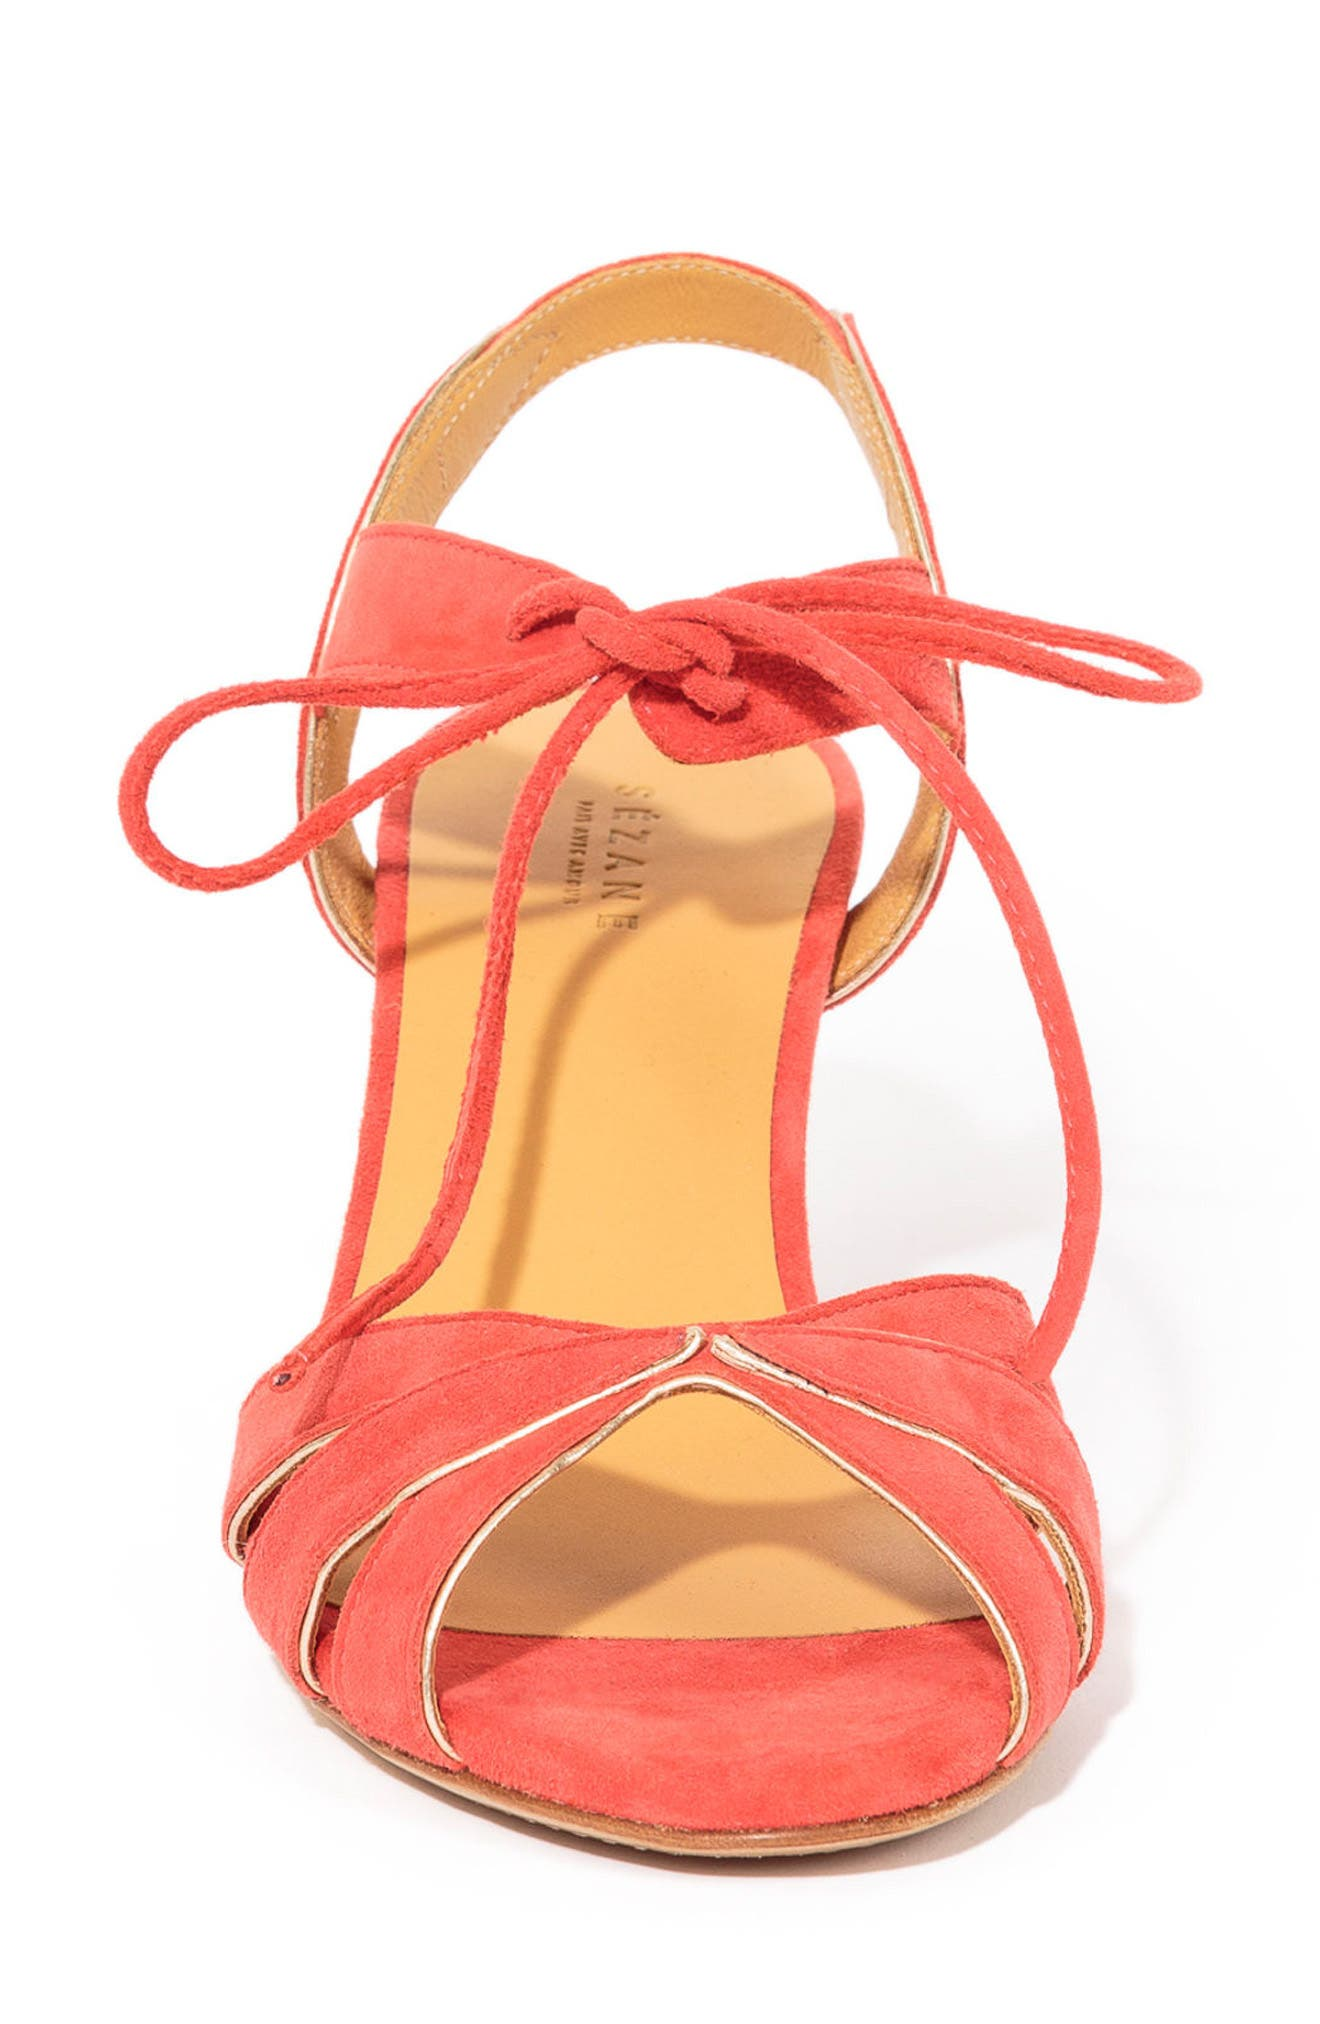 Victoire Ankle Tie Sandal,                             Alternate thumbnail 3, color,                             CORAL RED SUEDE